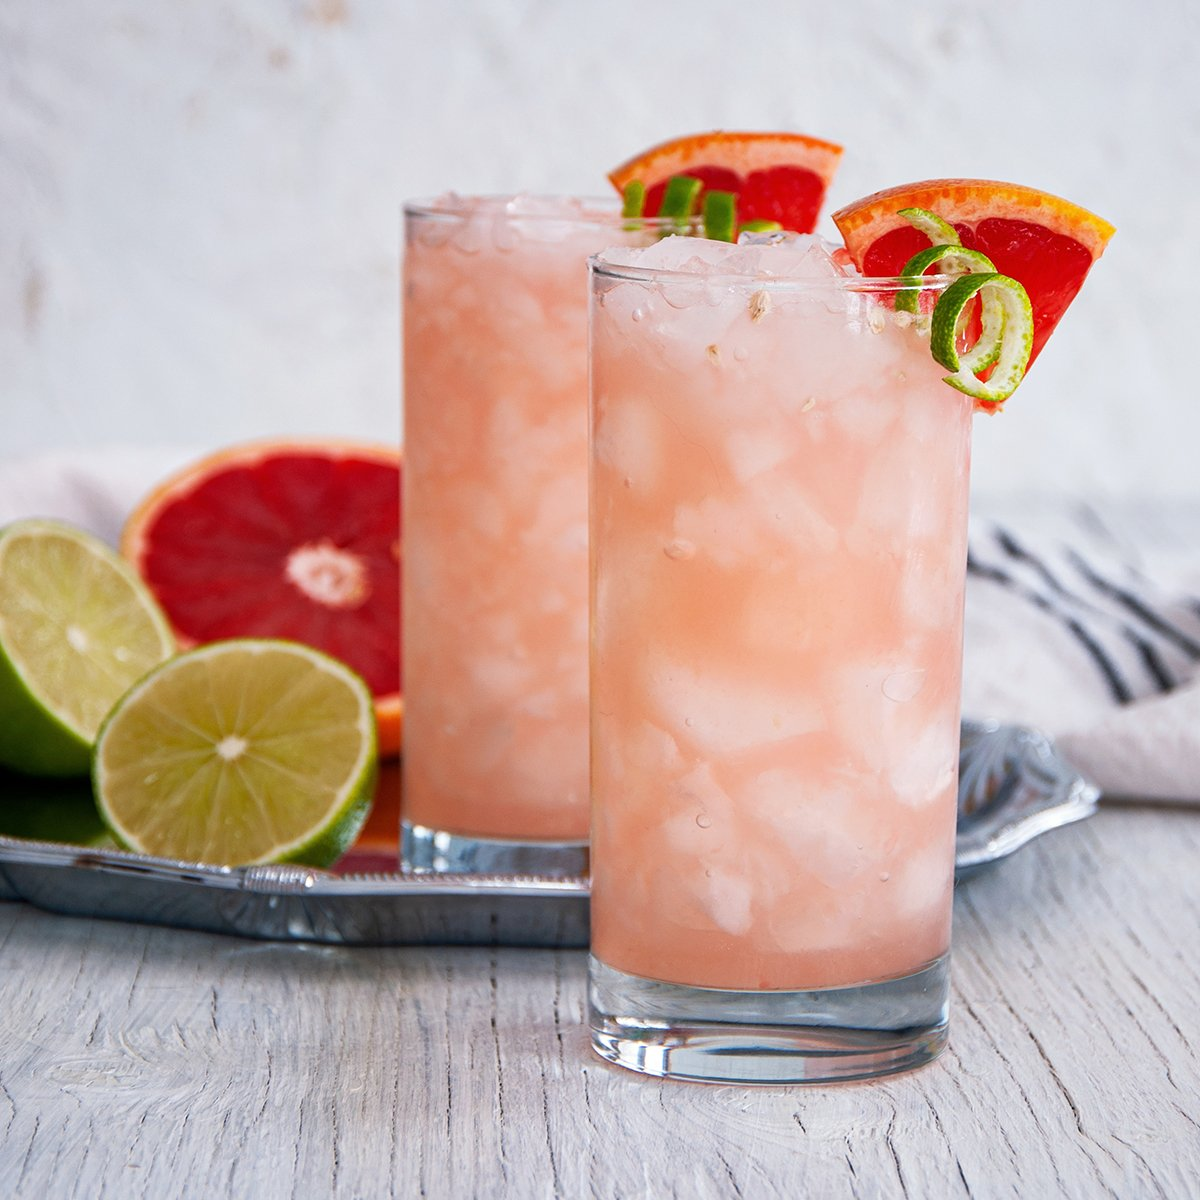 Two Paloma Cocktail recipes made - one on a white table and the other on a silver platter.